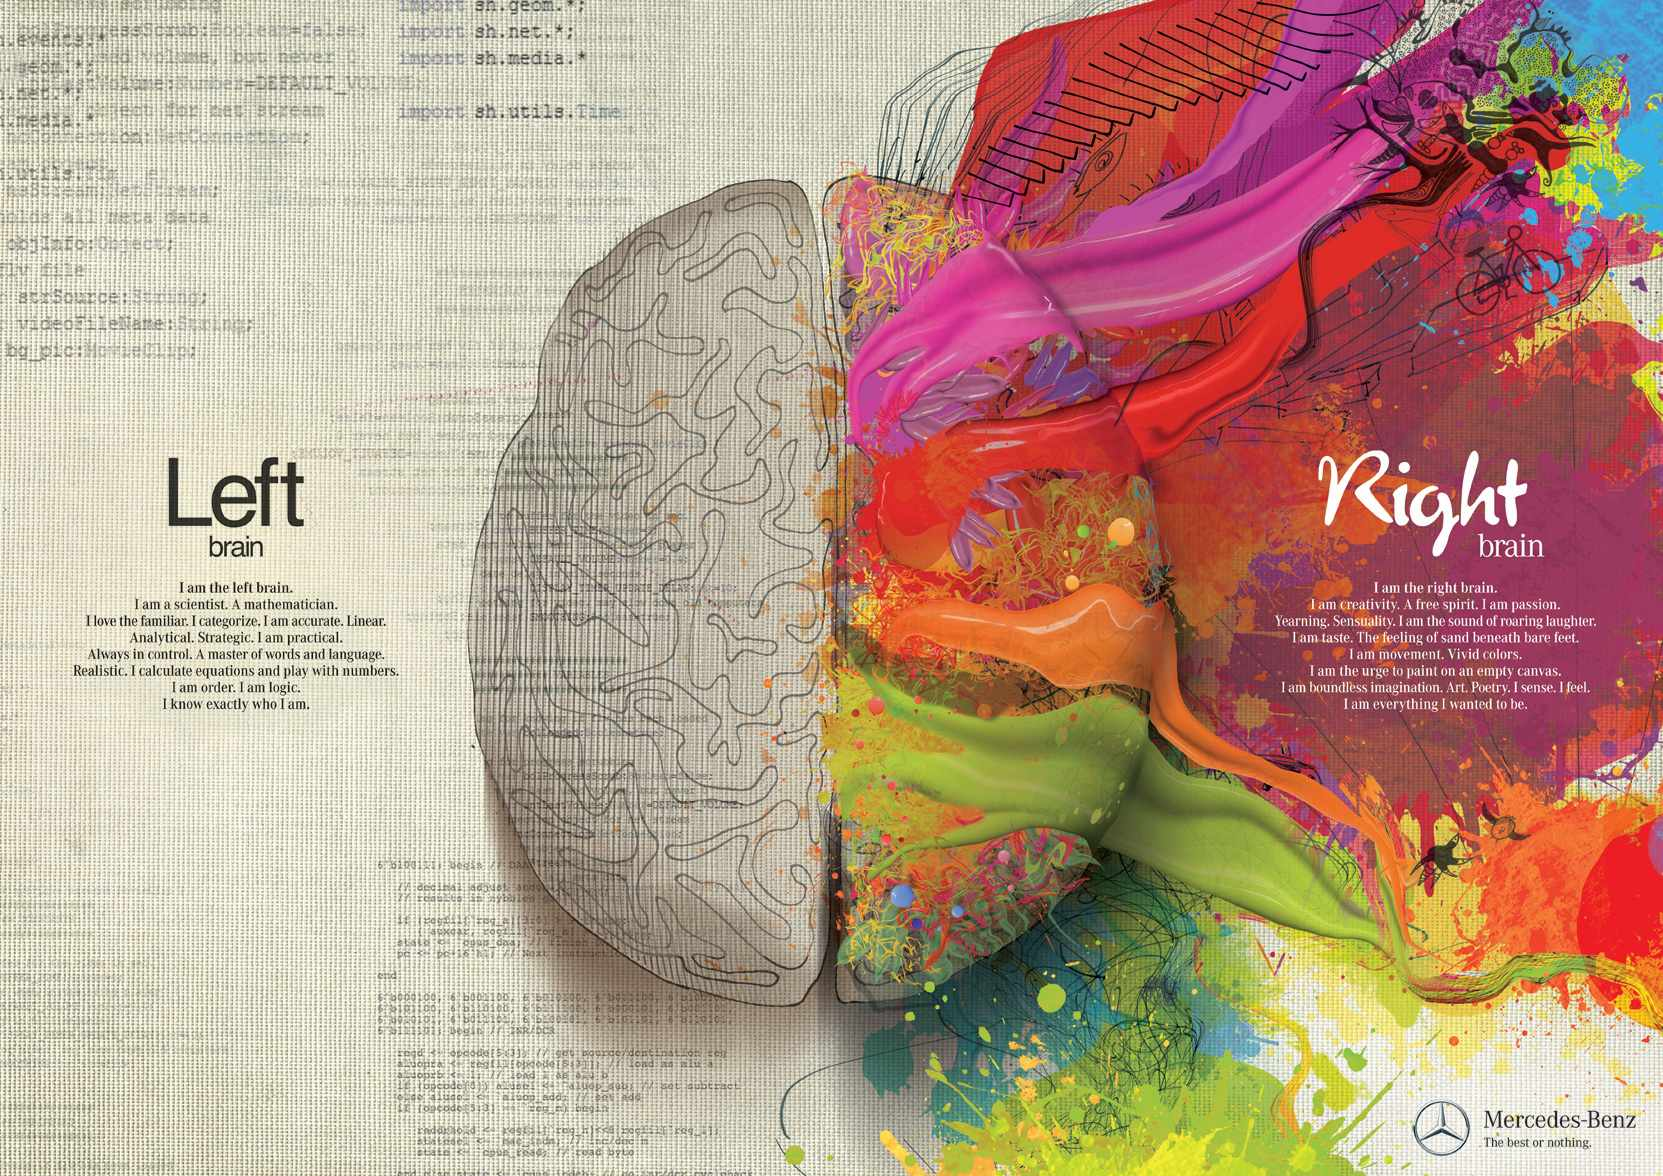 Mercedes ad depicting left and right brain functions